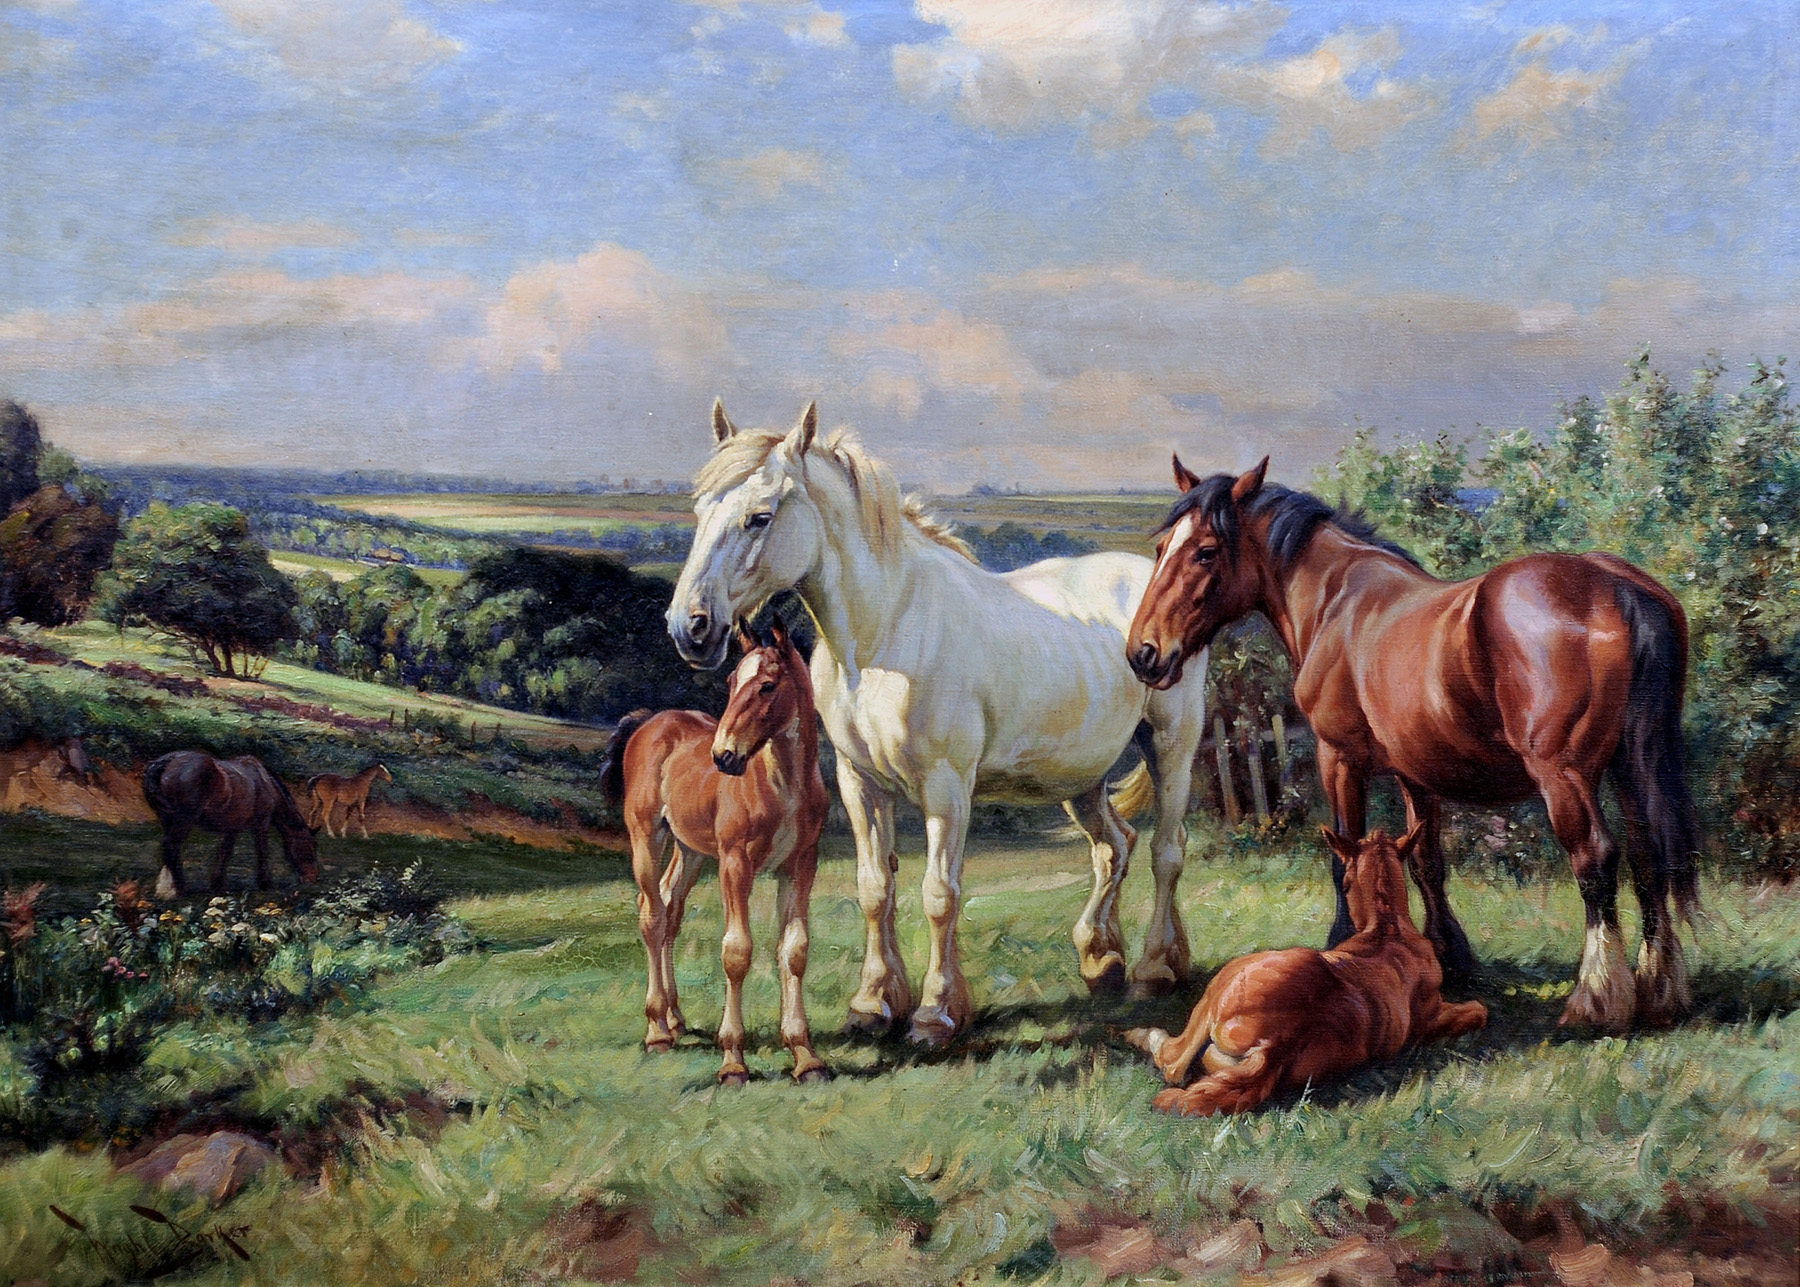 Click to see full size: Oil on canvas of horses, mares and foals by Wright Barker- Oil on canvas of horses, mares and foals by Wright Barker